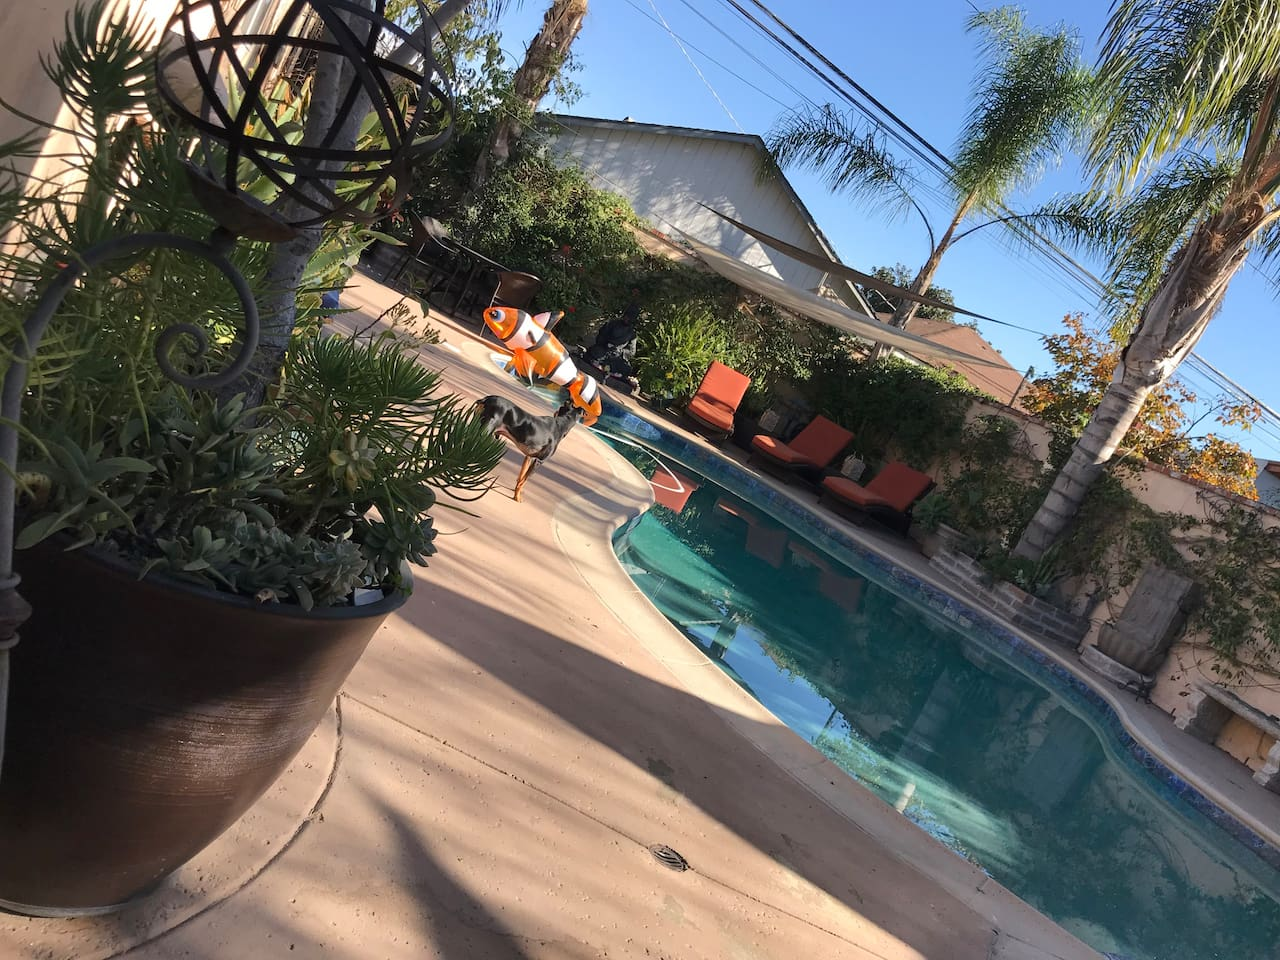 Sunny days all year round!! Relax in the hot tub day or night!!! Just steps away from your bedroom door!!